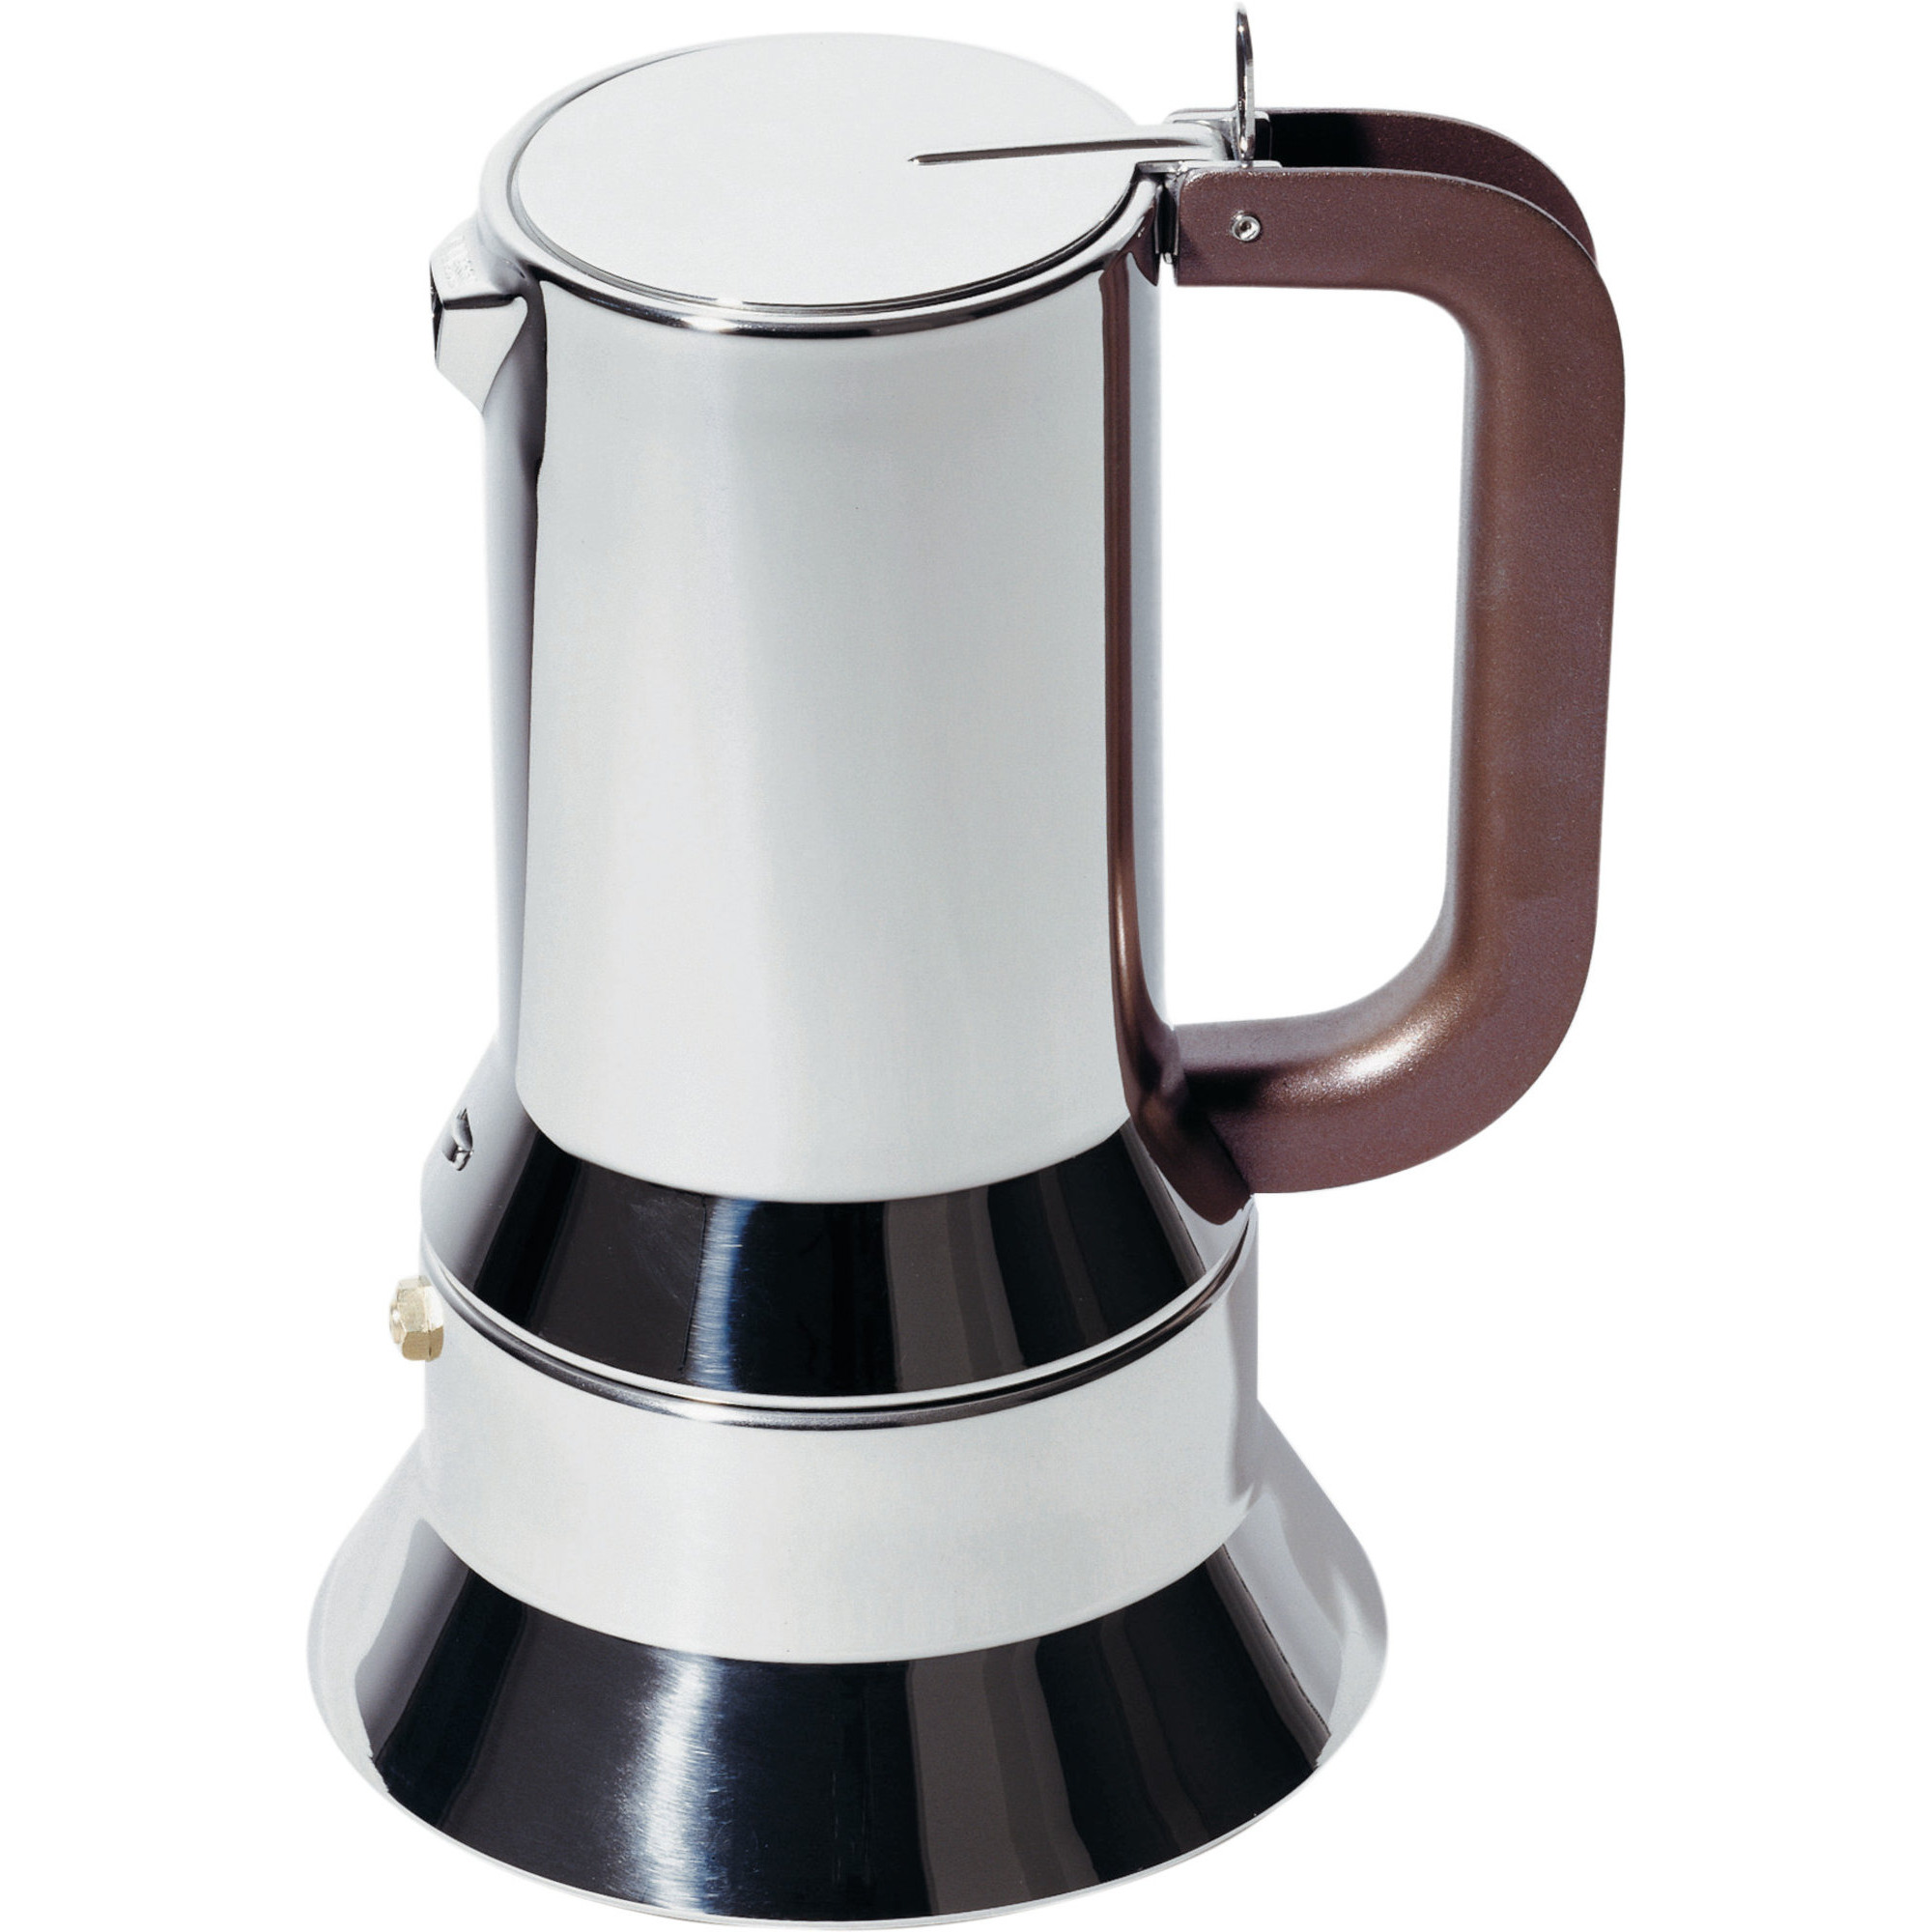 Alessi Espresso coffee maker 9 cups